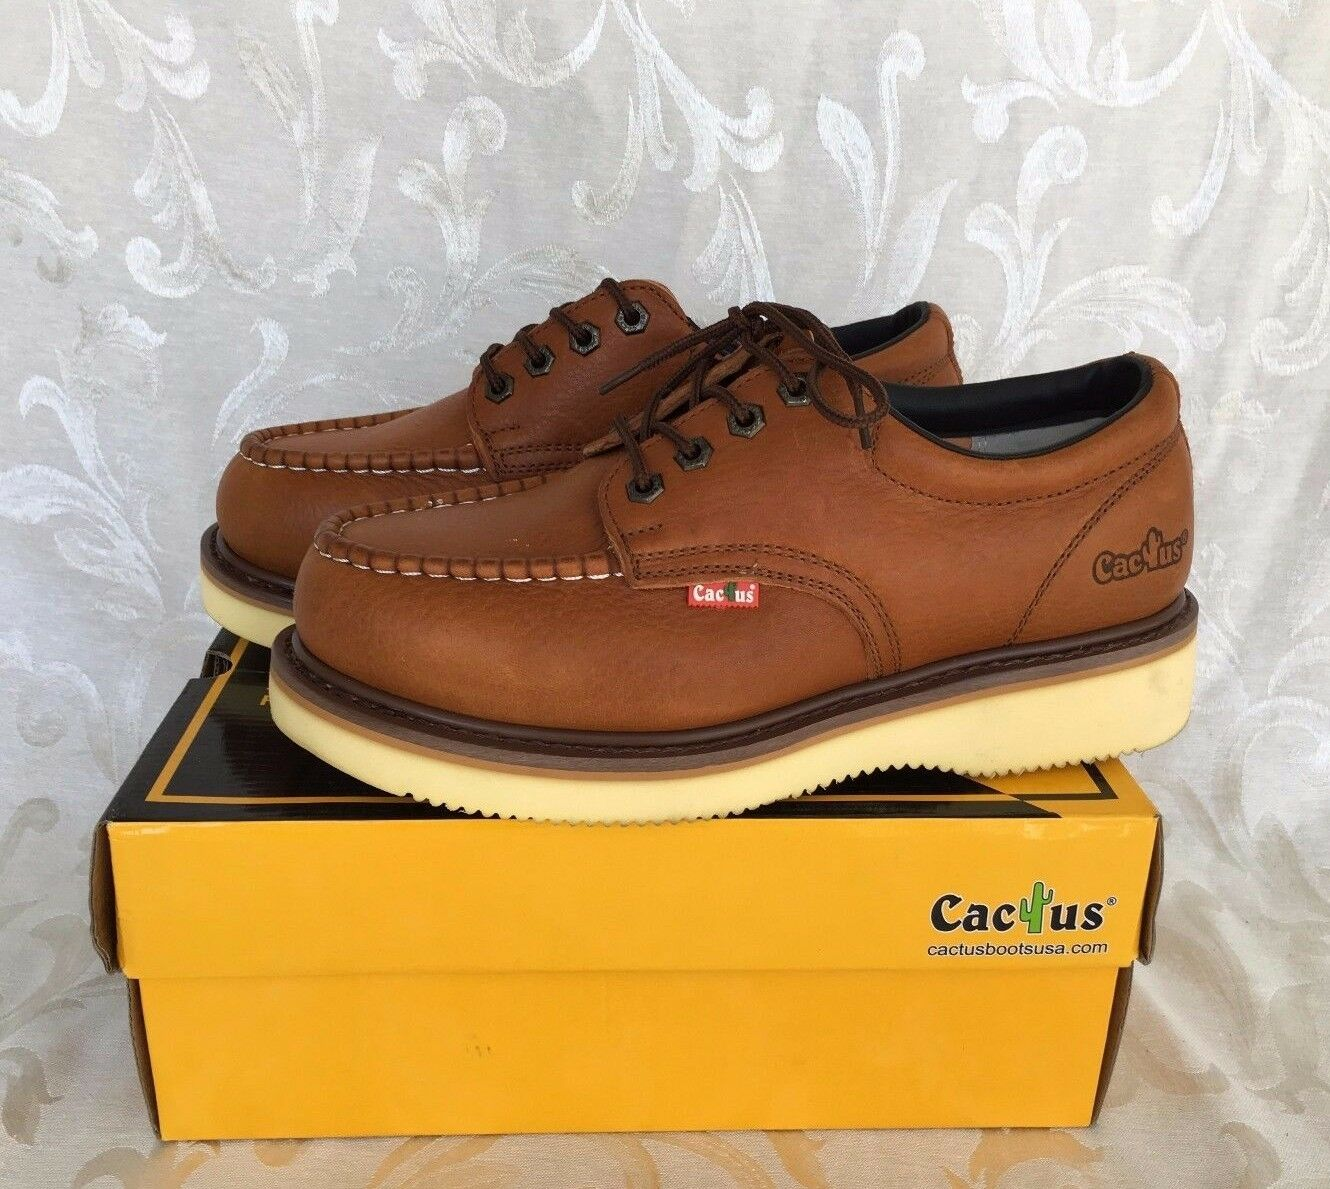 Cactus Men's 422M LT. BROWN Leather Work Boots or Casual 4  Low Cut shoes Size